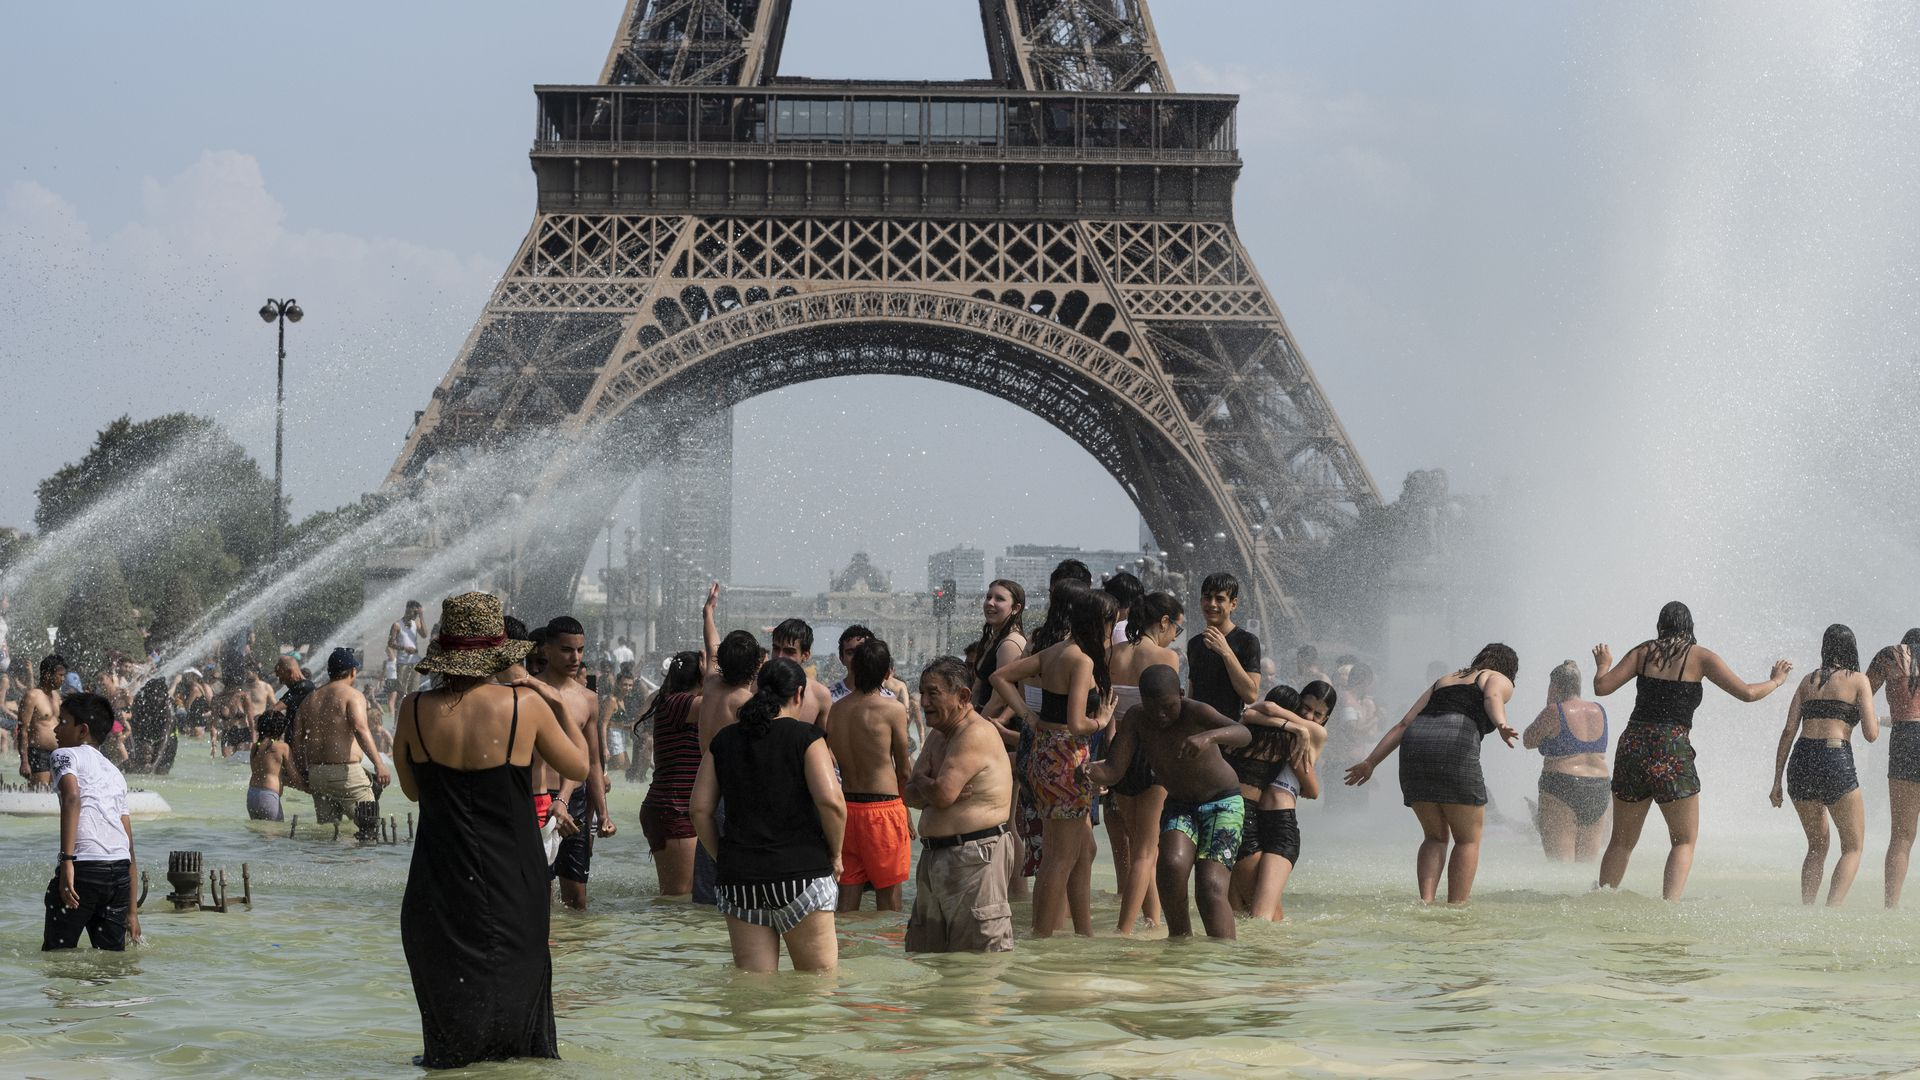 people swimming in water in front of the eiffel tower.